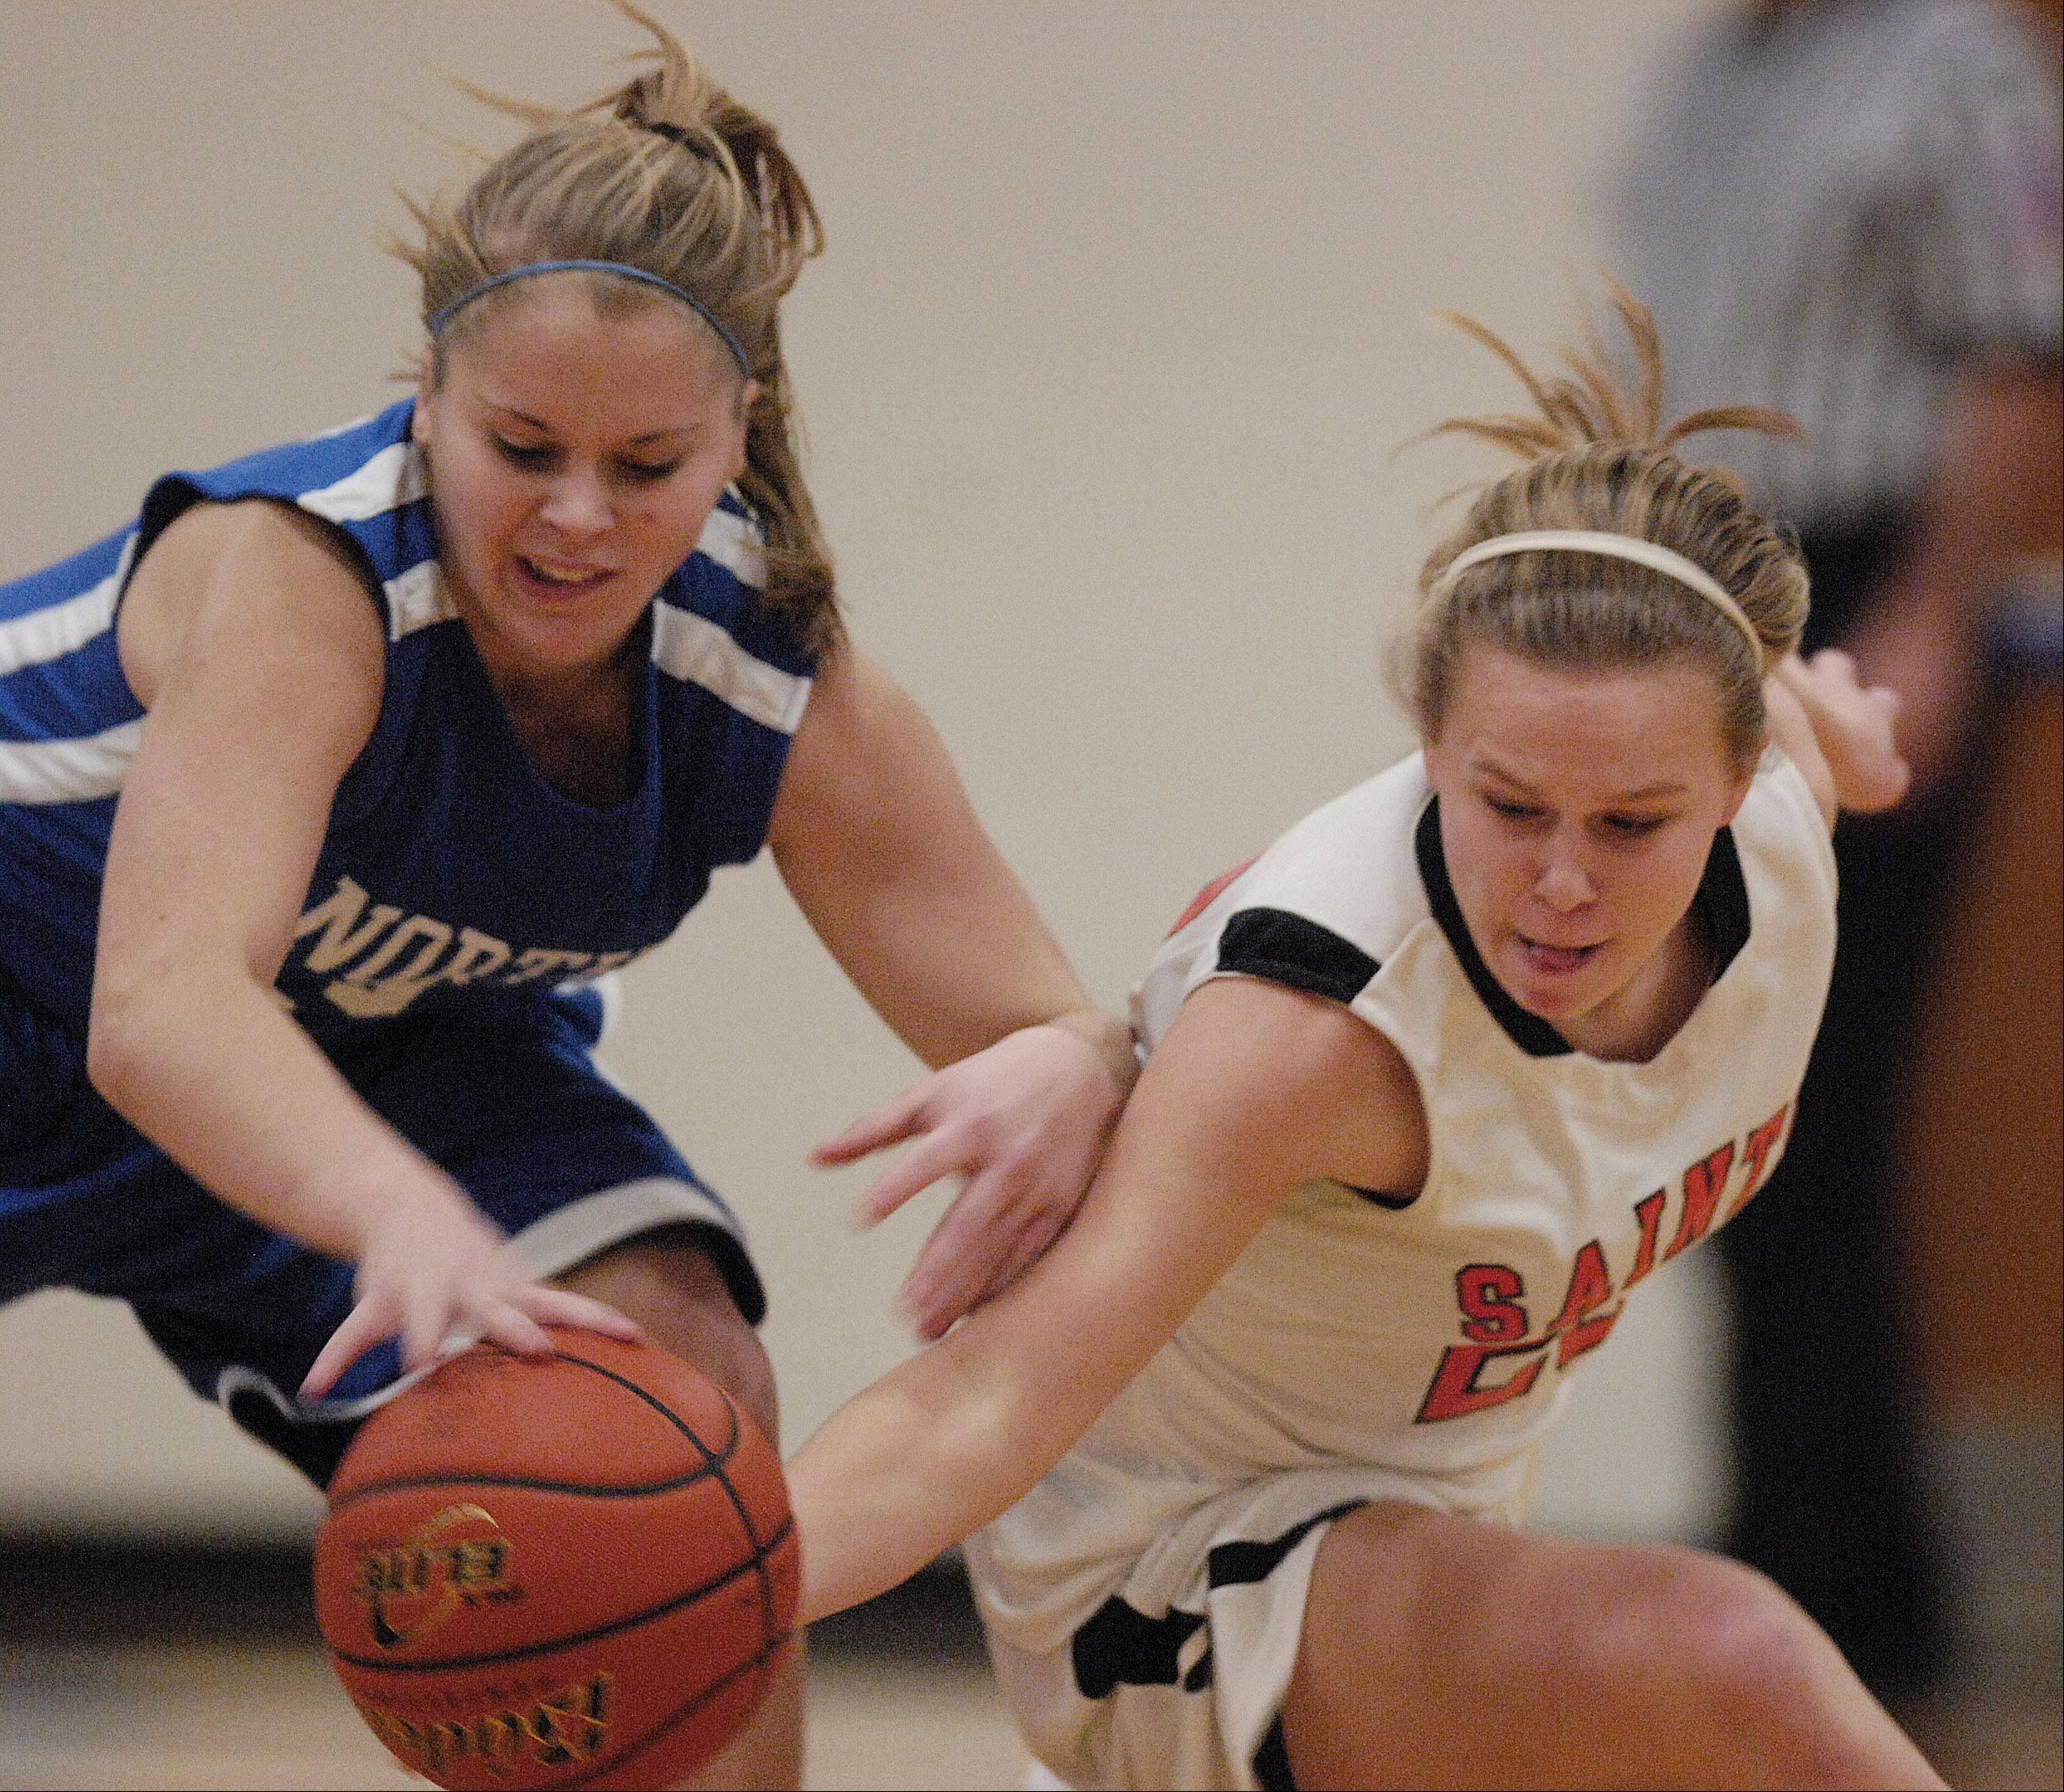 Wheaton North;s Reilly Stewart and St. Charles East's Amanda Hilton chase a loose ball during the Bill Neibch Holiday girls basketball tournament Monday at Wheaton North High School.